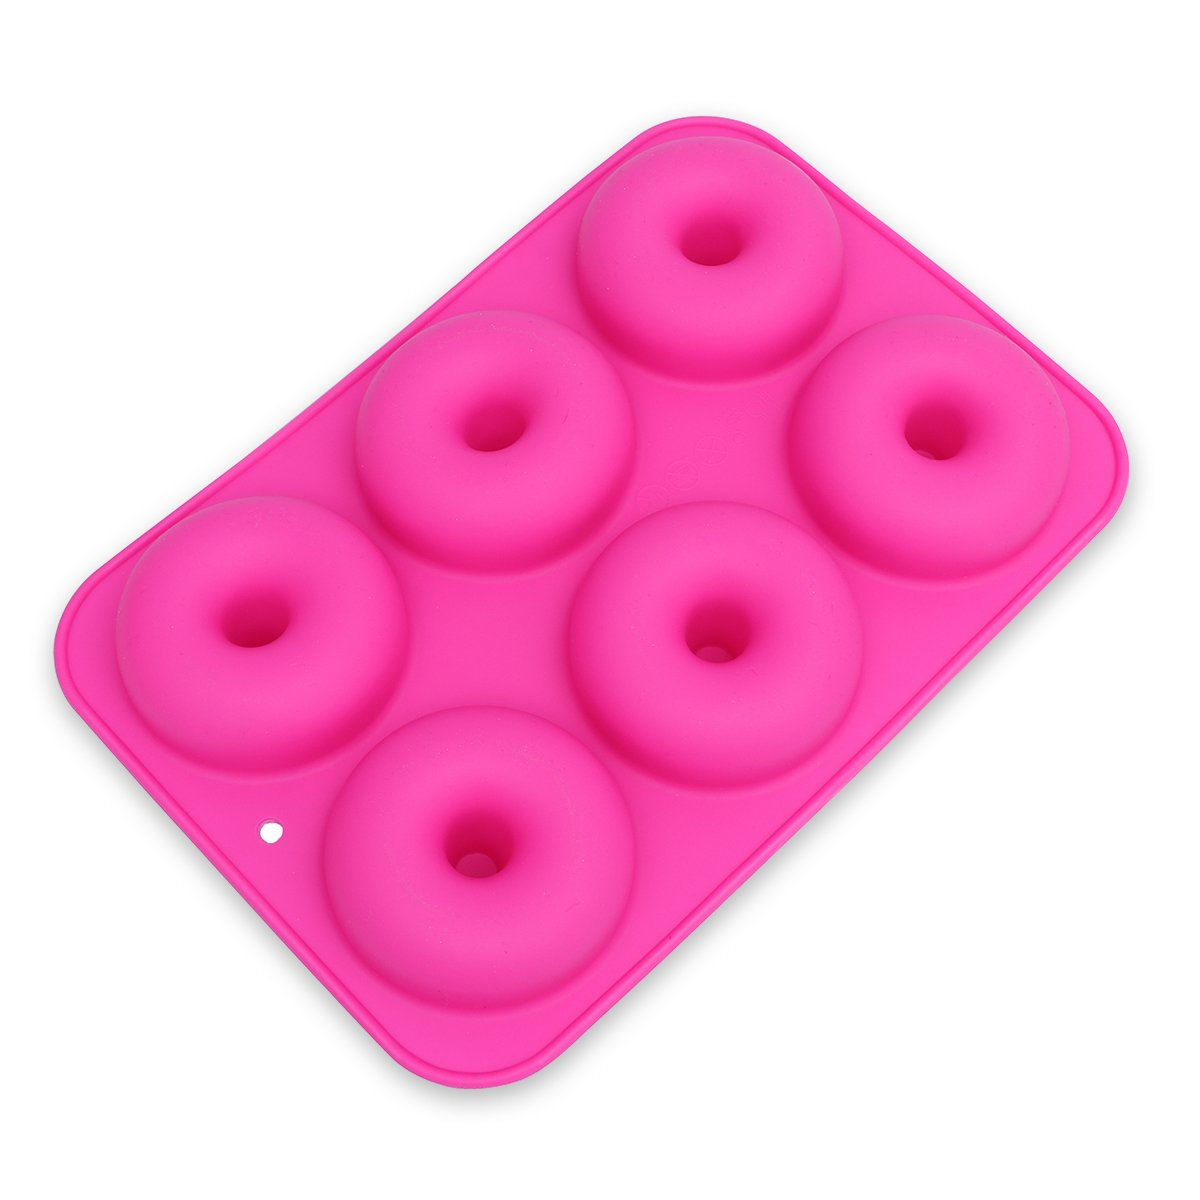 OUNONA 6-Cavity Silicone Donut Mold, Non-Stick Donut Baking Pan for Cake Biscuit Bagels Muffins (Rose Red)